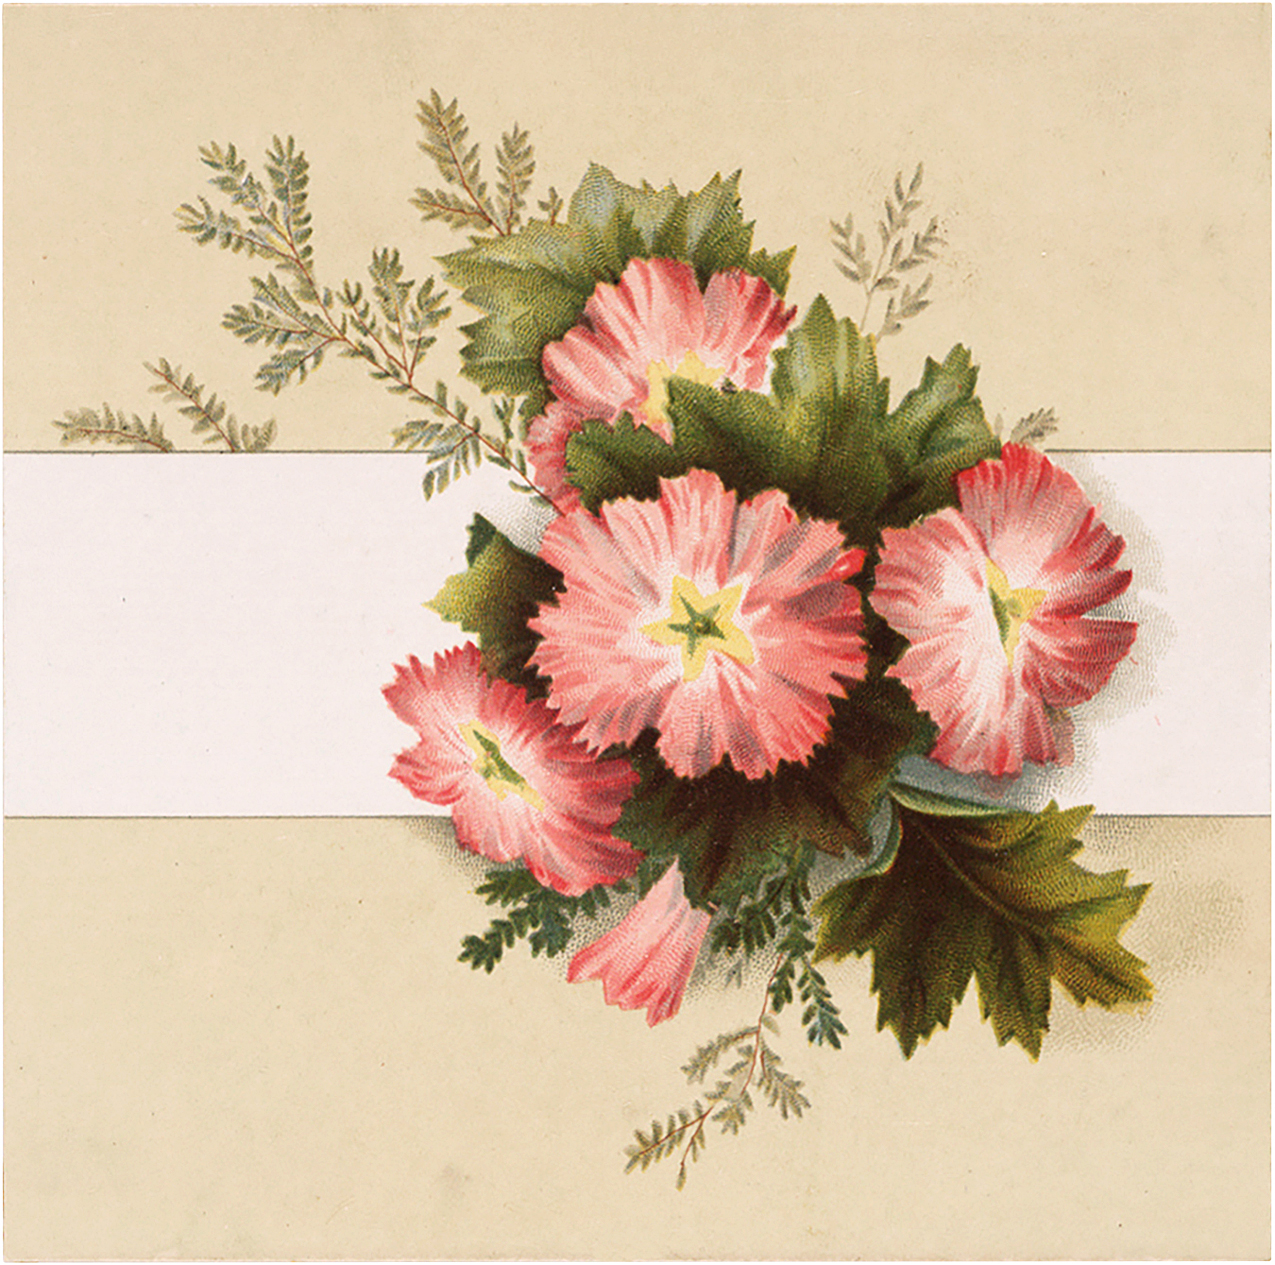 Vintage Card with Coral Flowers Image